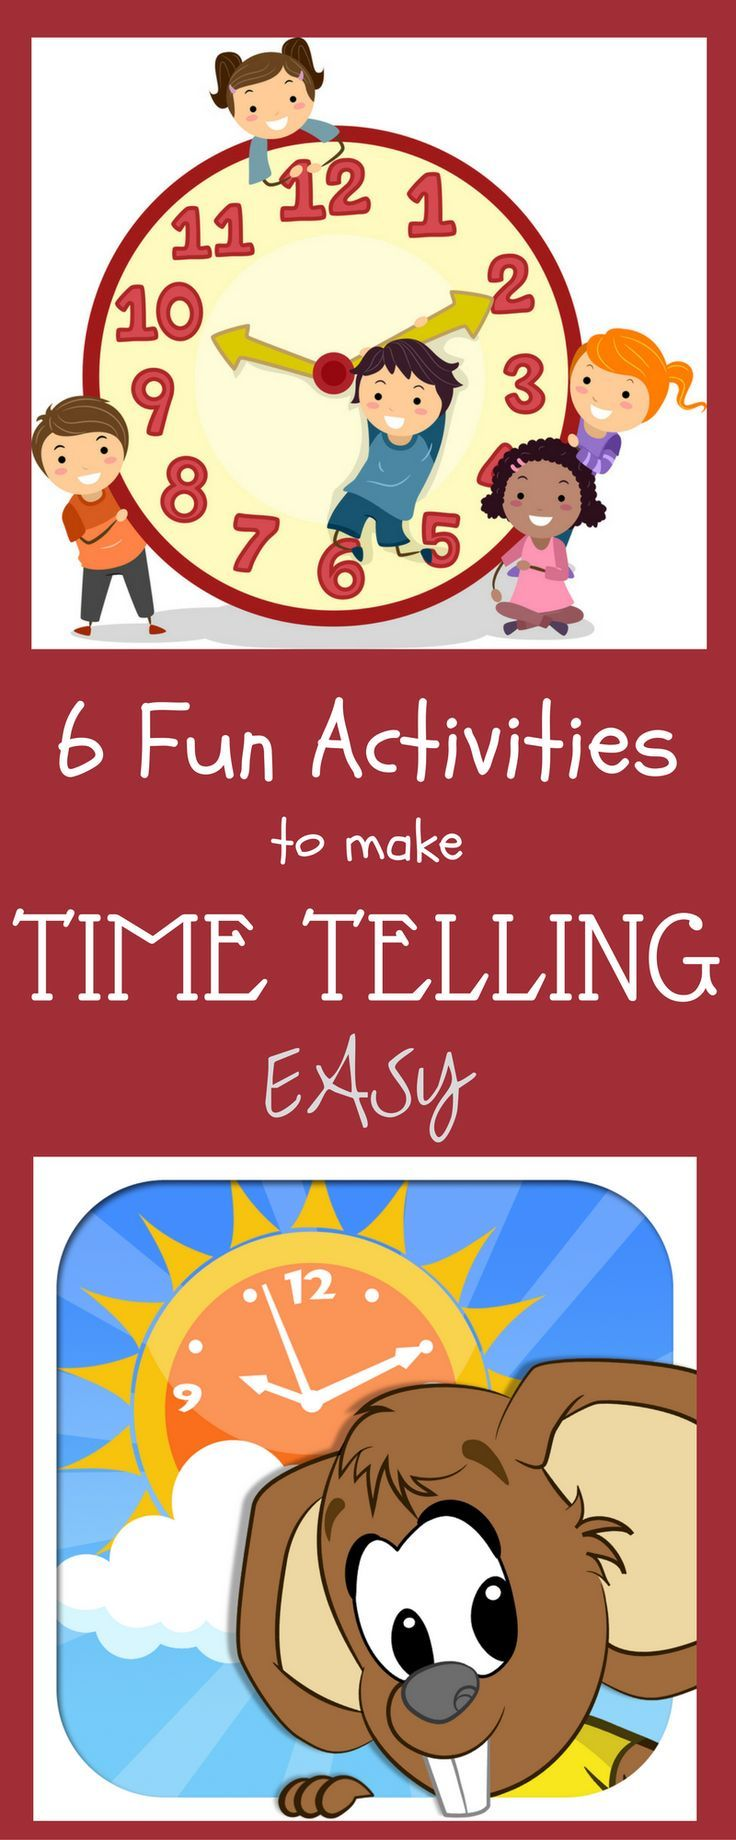 6 EasyTelling Time Activities for First Grade kids. Also for 2nd and 3rd grade kids. Teach telling time to the minutes and to the hour. Free DIY Clock printable included in this pack of 6 telling time activities for kindergarten kids. Telling Time math Games for classrooms and homeschools. Fun Telling time craft ideas included too. Pin it to your telling tie activities board.